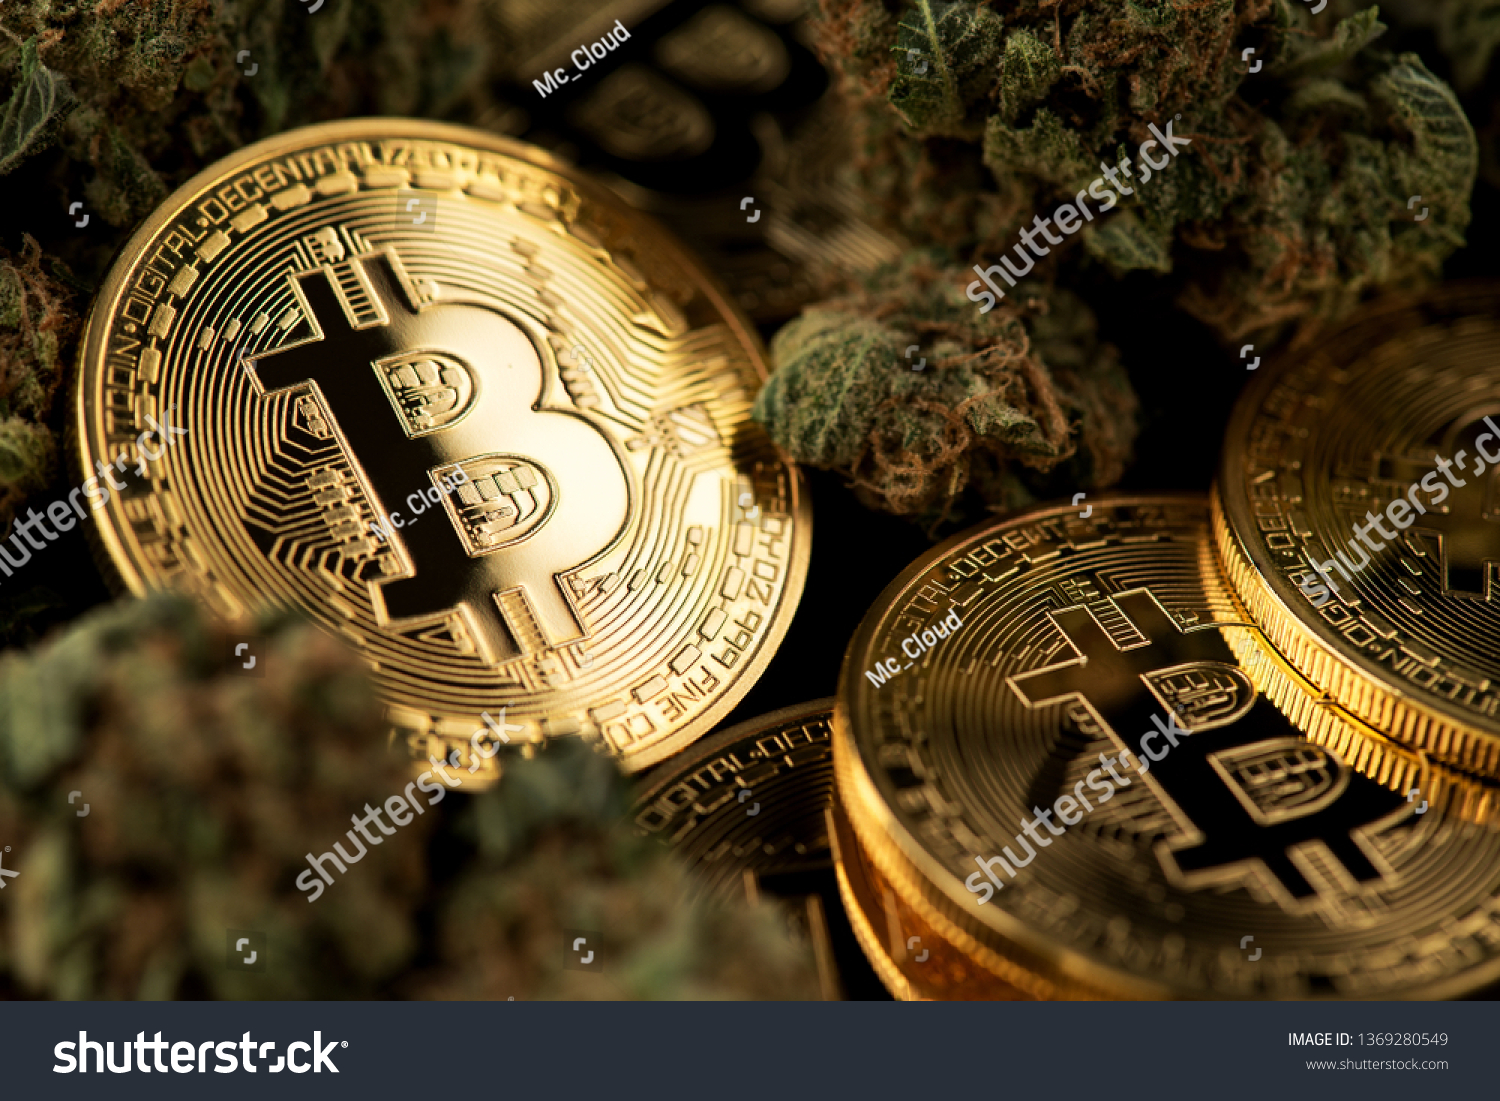 Mmjcoin crypto currency betting sites legal in us